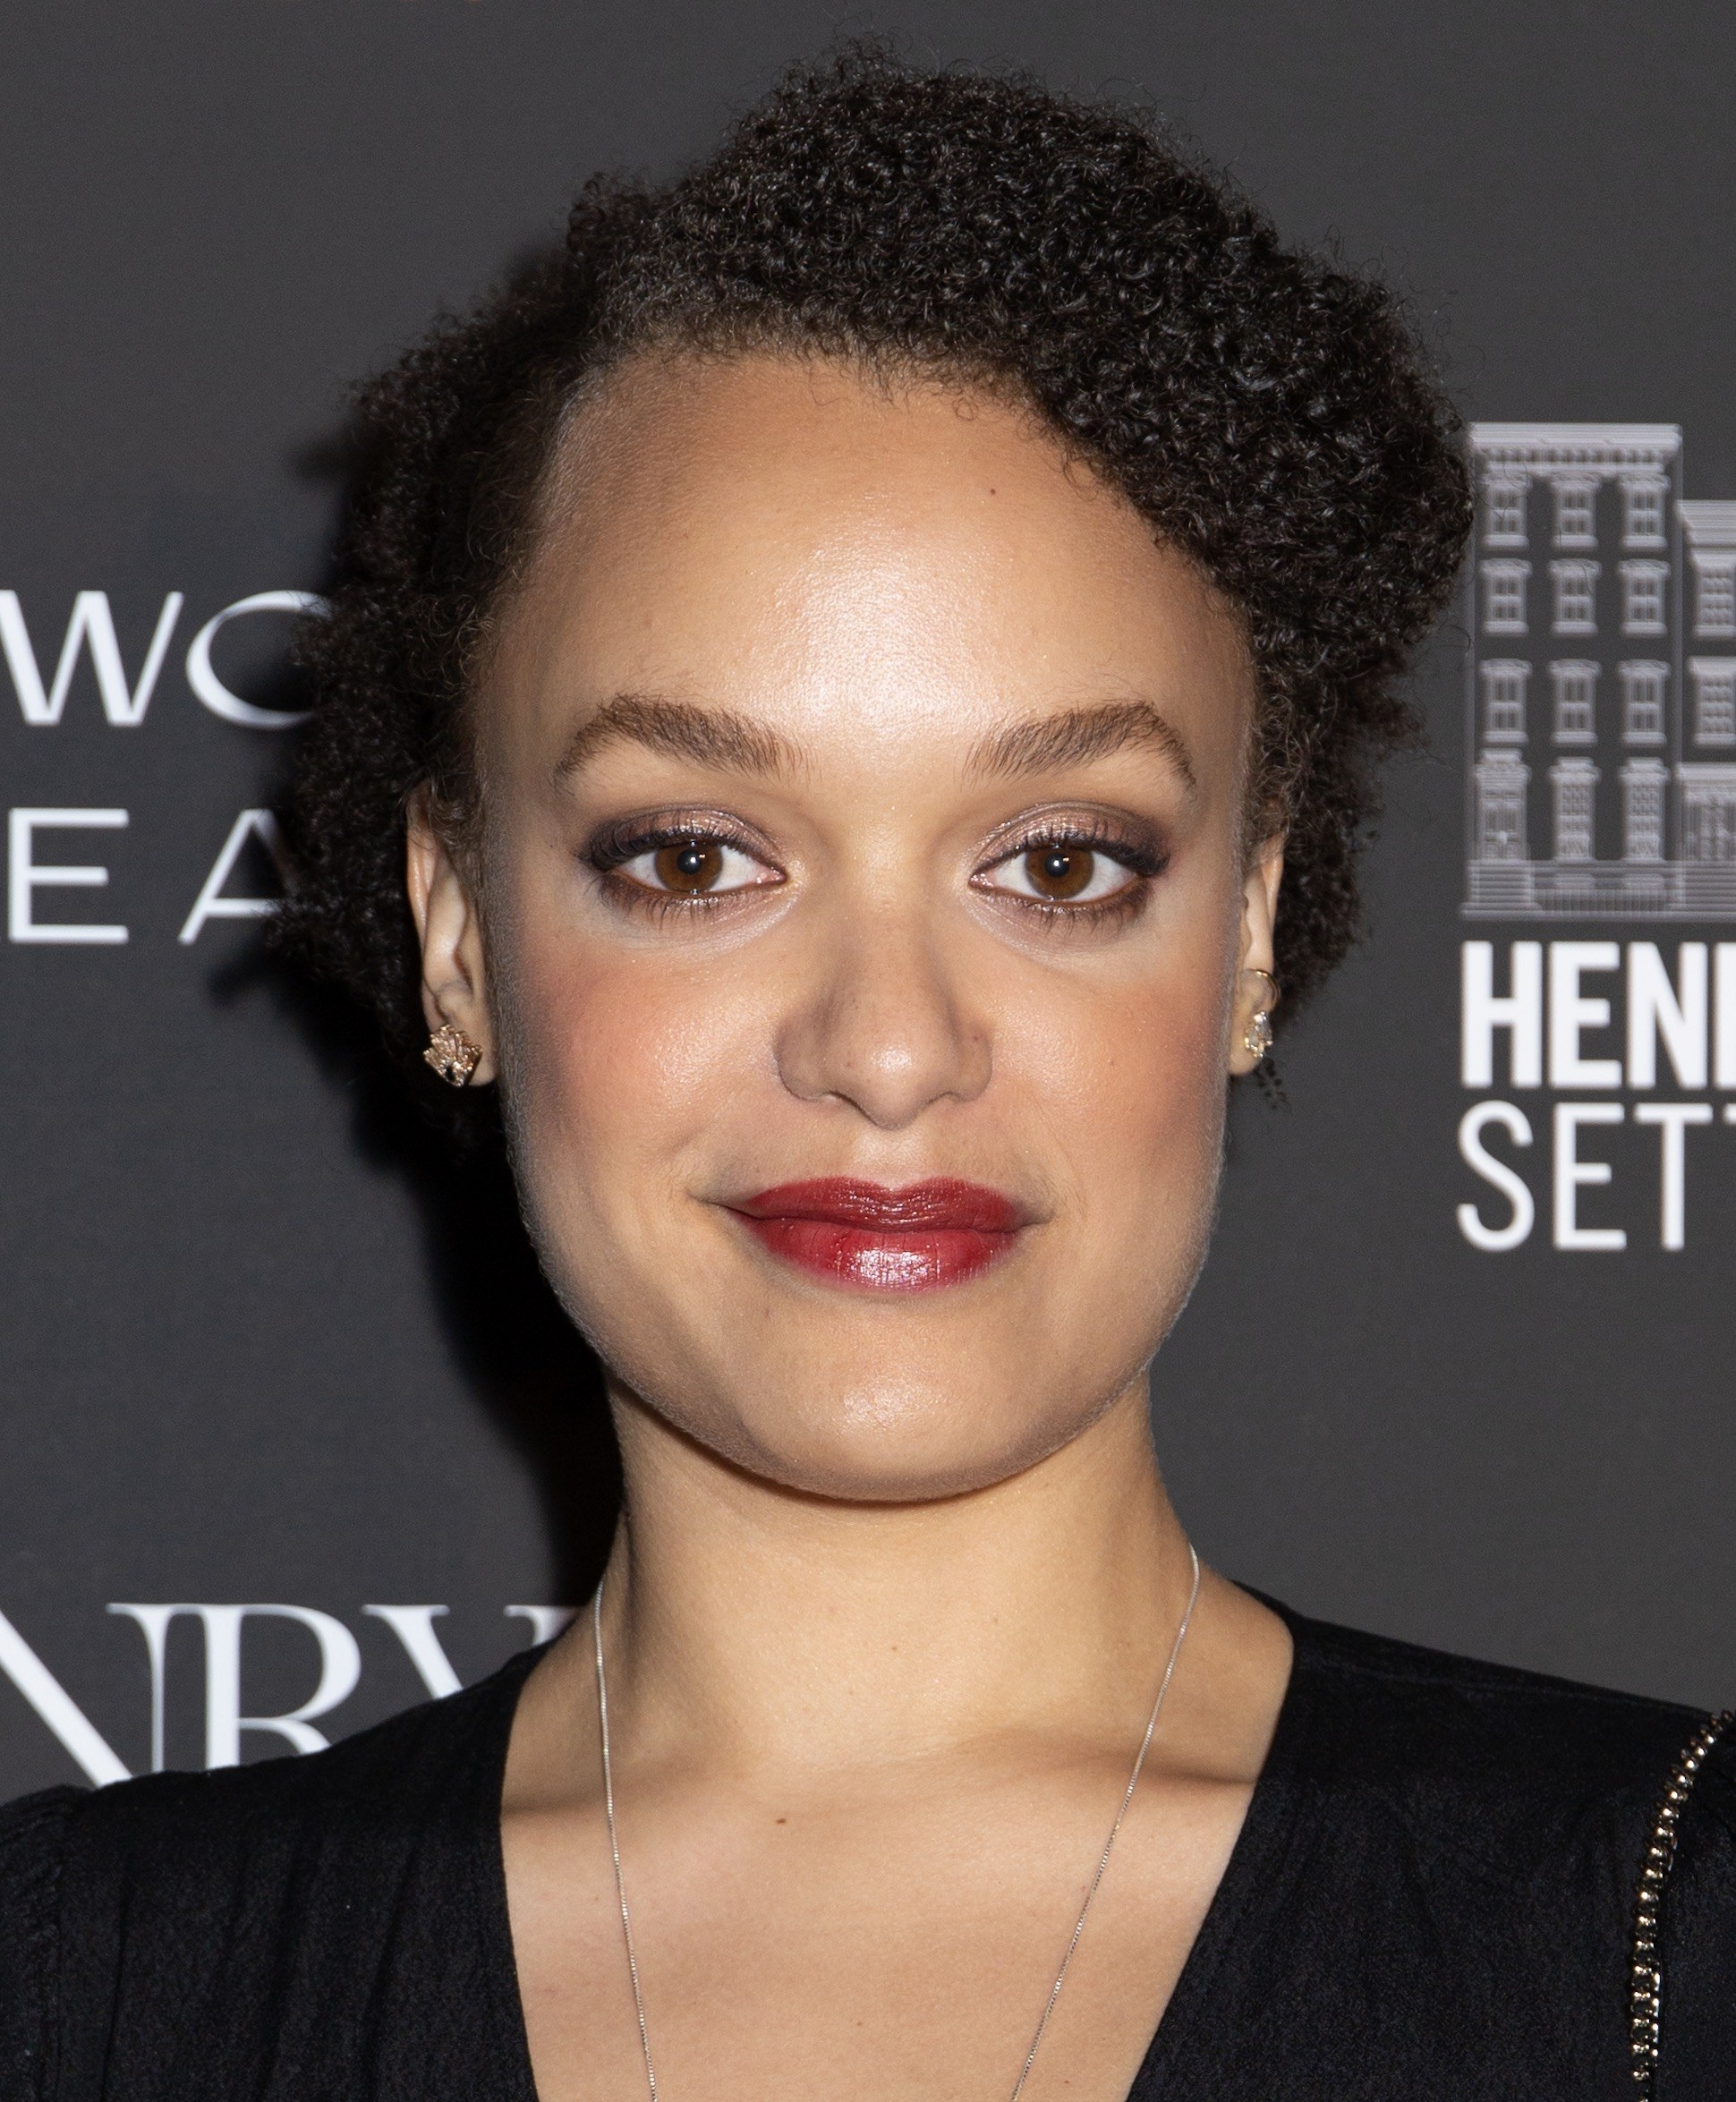 Britne Oldford posing on the red carpet